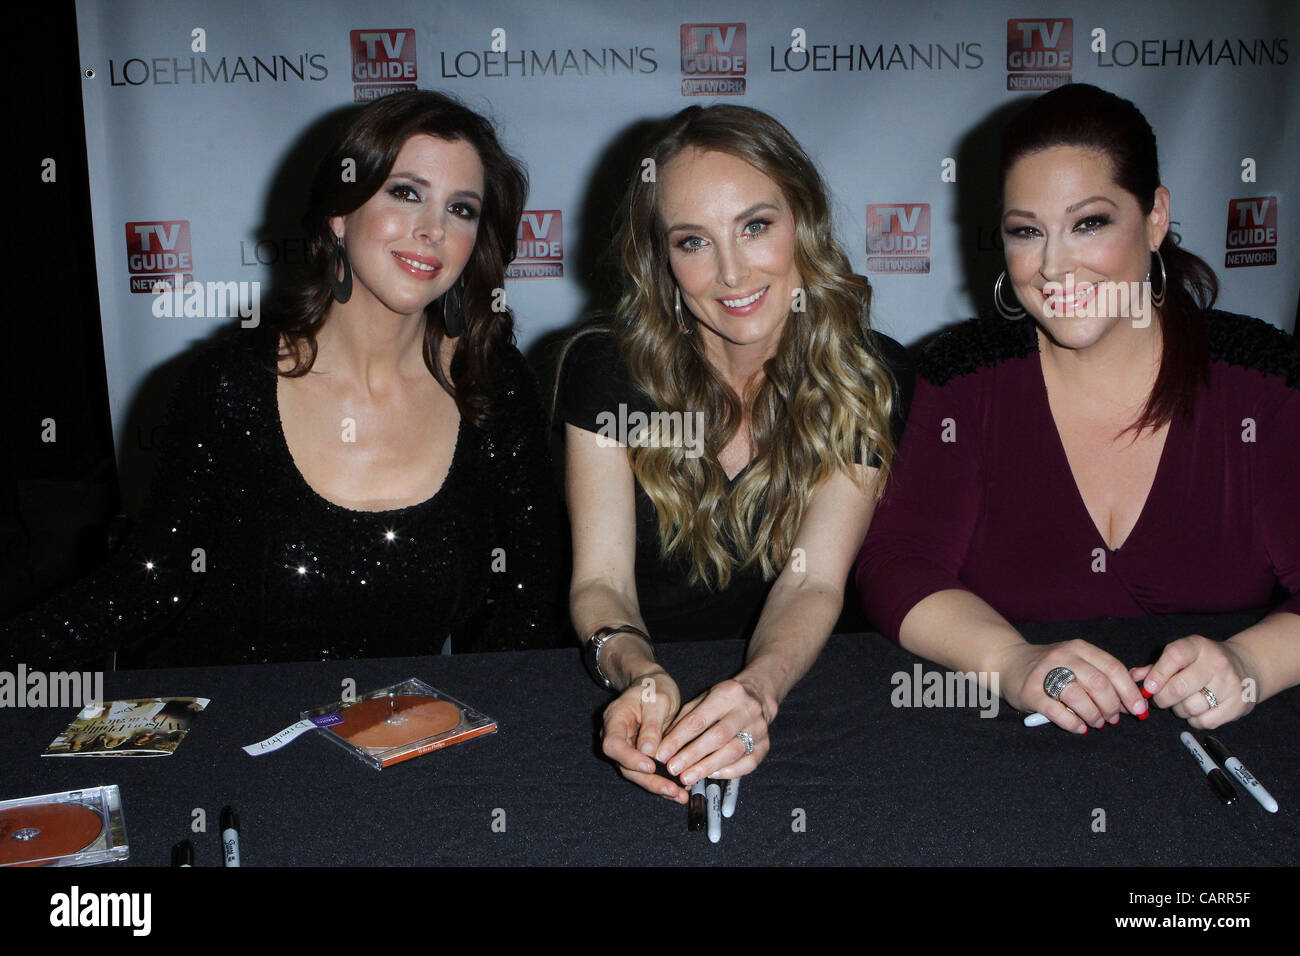 April 15, 2012 - Los Angeles, California, U.S. - Wendy Wilson;Chynna Phillips;Carnie Wilson .TV Guide Network's - Stock Image